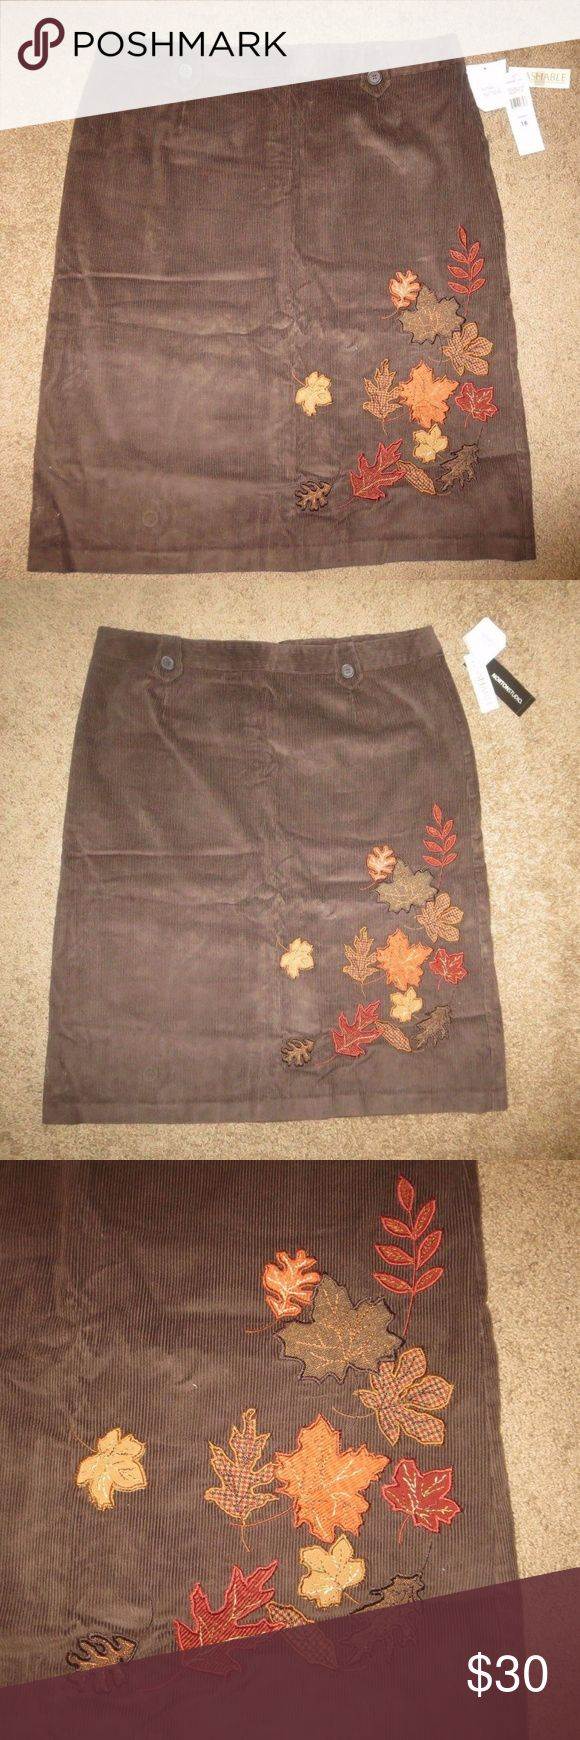 "Norton Studio Woman Plus Size Brown Skirt - 18 Norton Studio Woman Plus Size Skirt - Brown corduroy appliqued with fall leaves on the front makes it a great skirt for fall!  Condition: Brand new with tags Size: 18 Material; 100% cotton Measurements: Approximately 38"" Waist x 27"" Length Slit: Small 7"" slit in the back Zipper with hook closure in the back No pockets Belt loops have decorative button detail  From a smoke and pet free home! Norton Studio Woman Skirts"